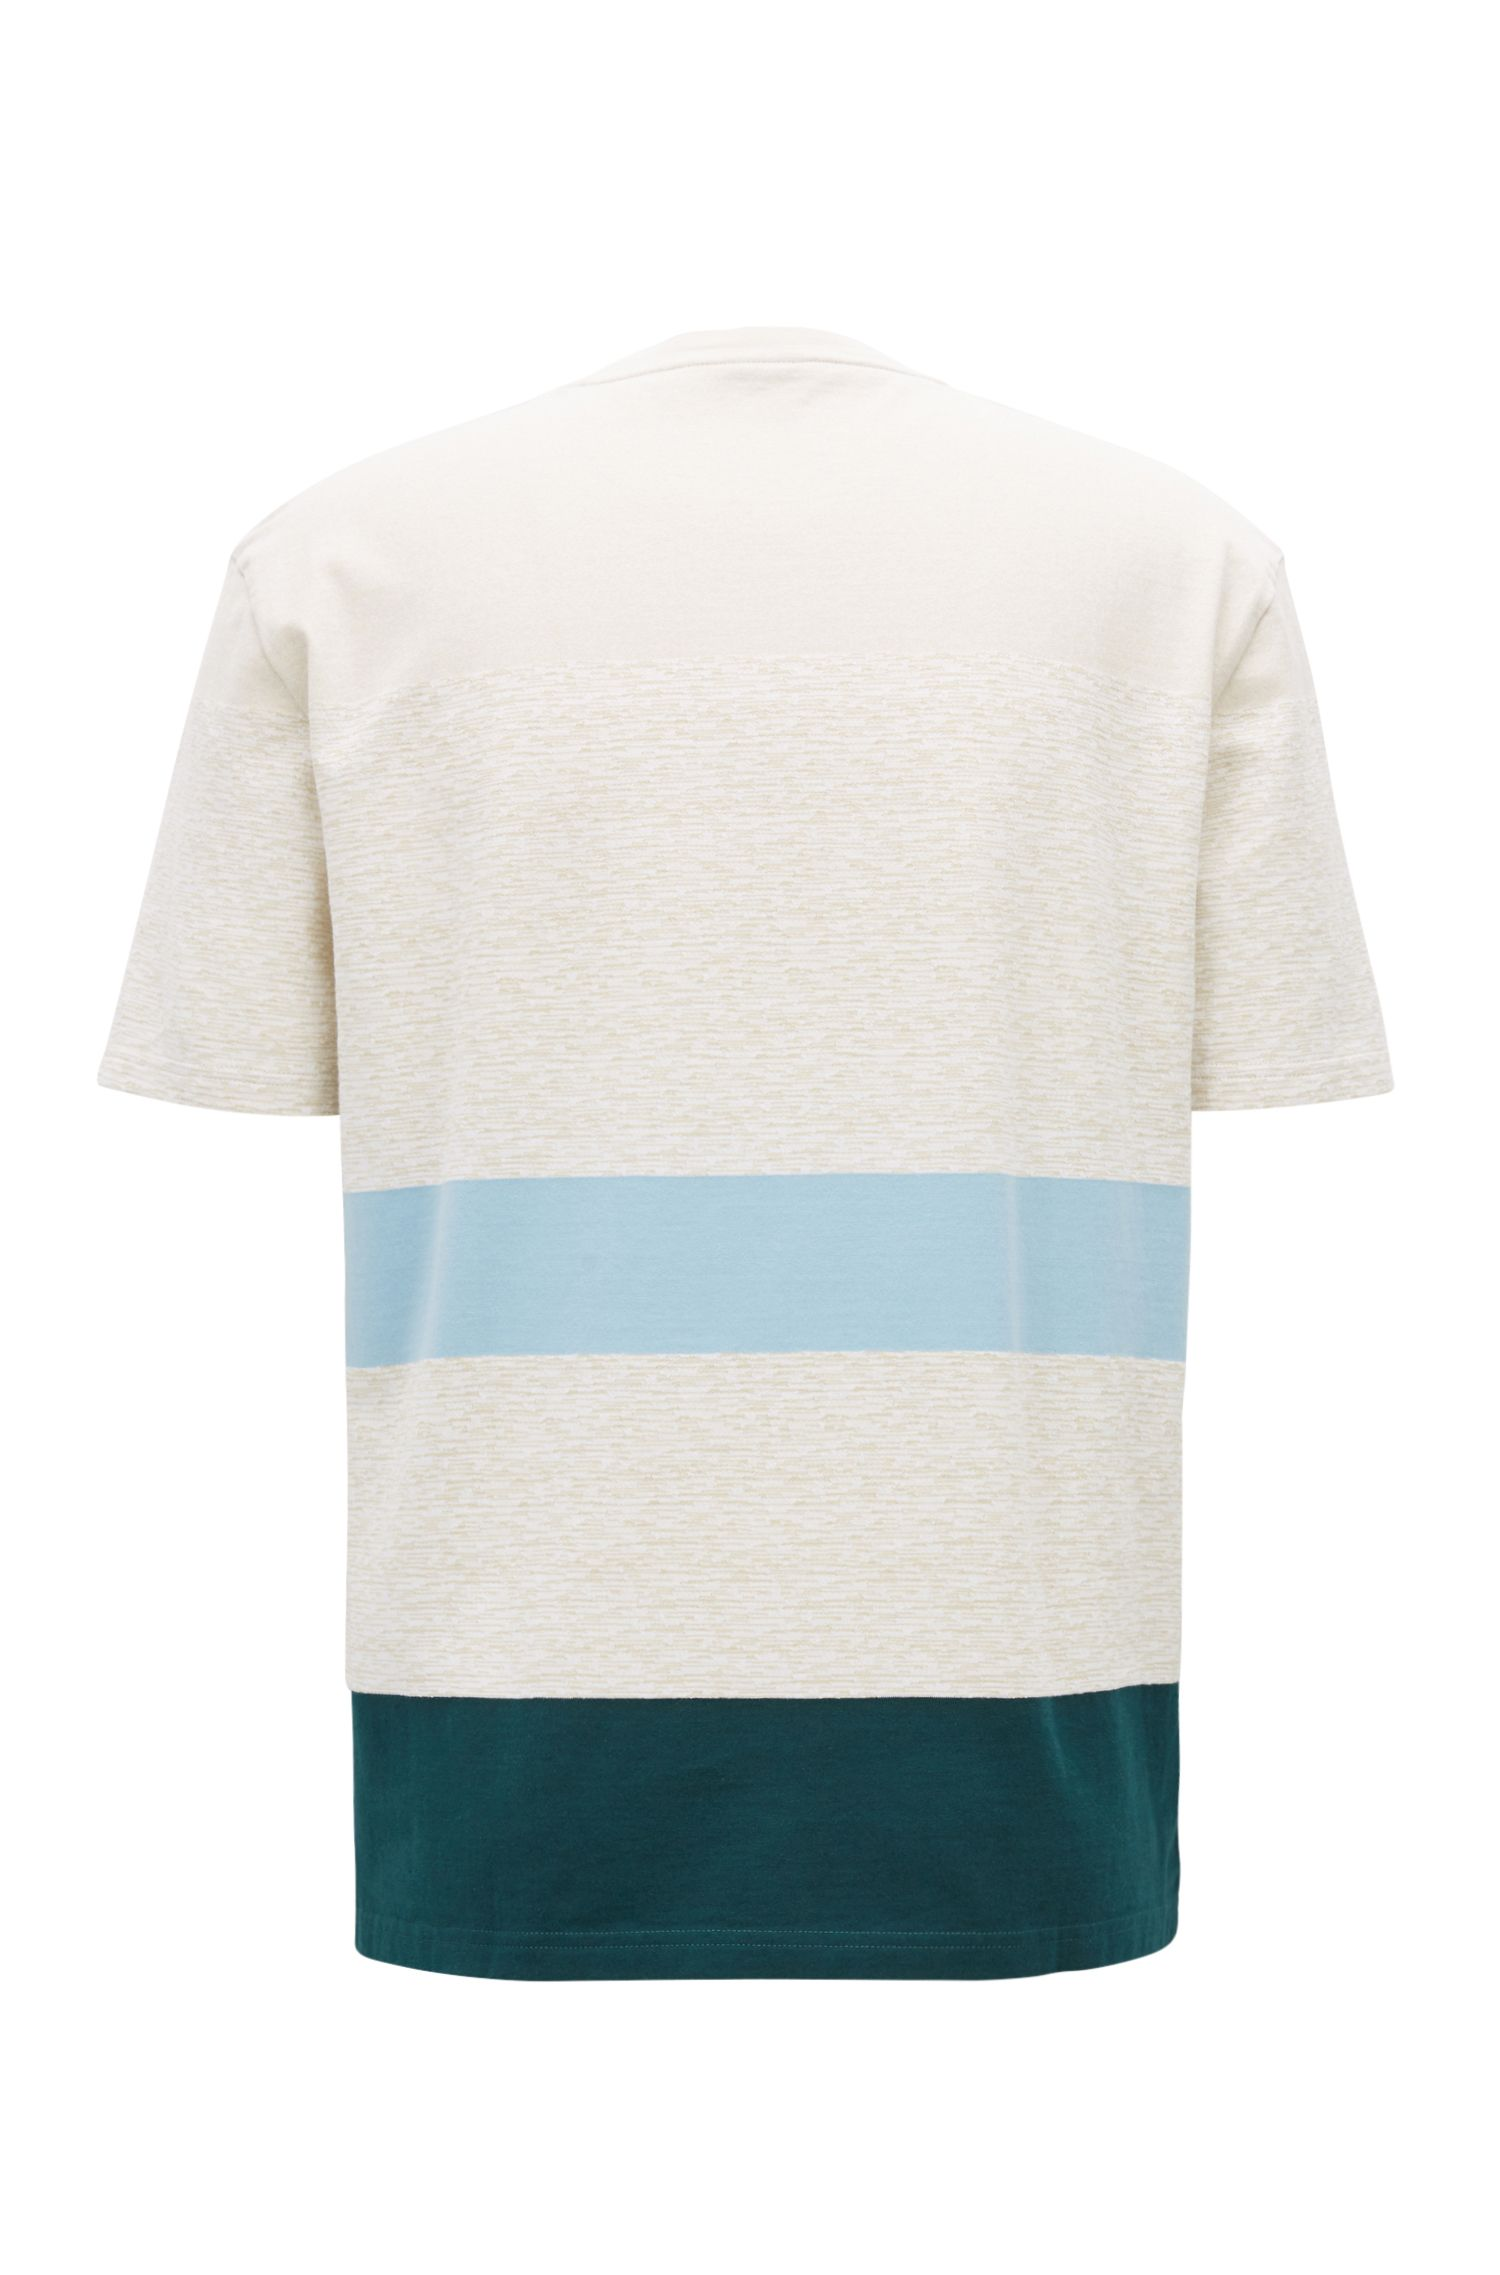 Striped patterned cotton jersey T-shirt, White